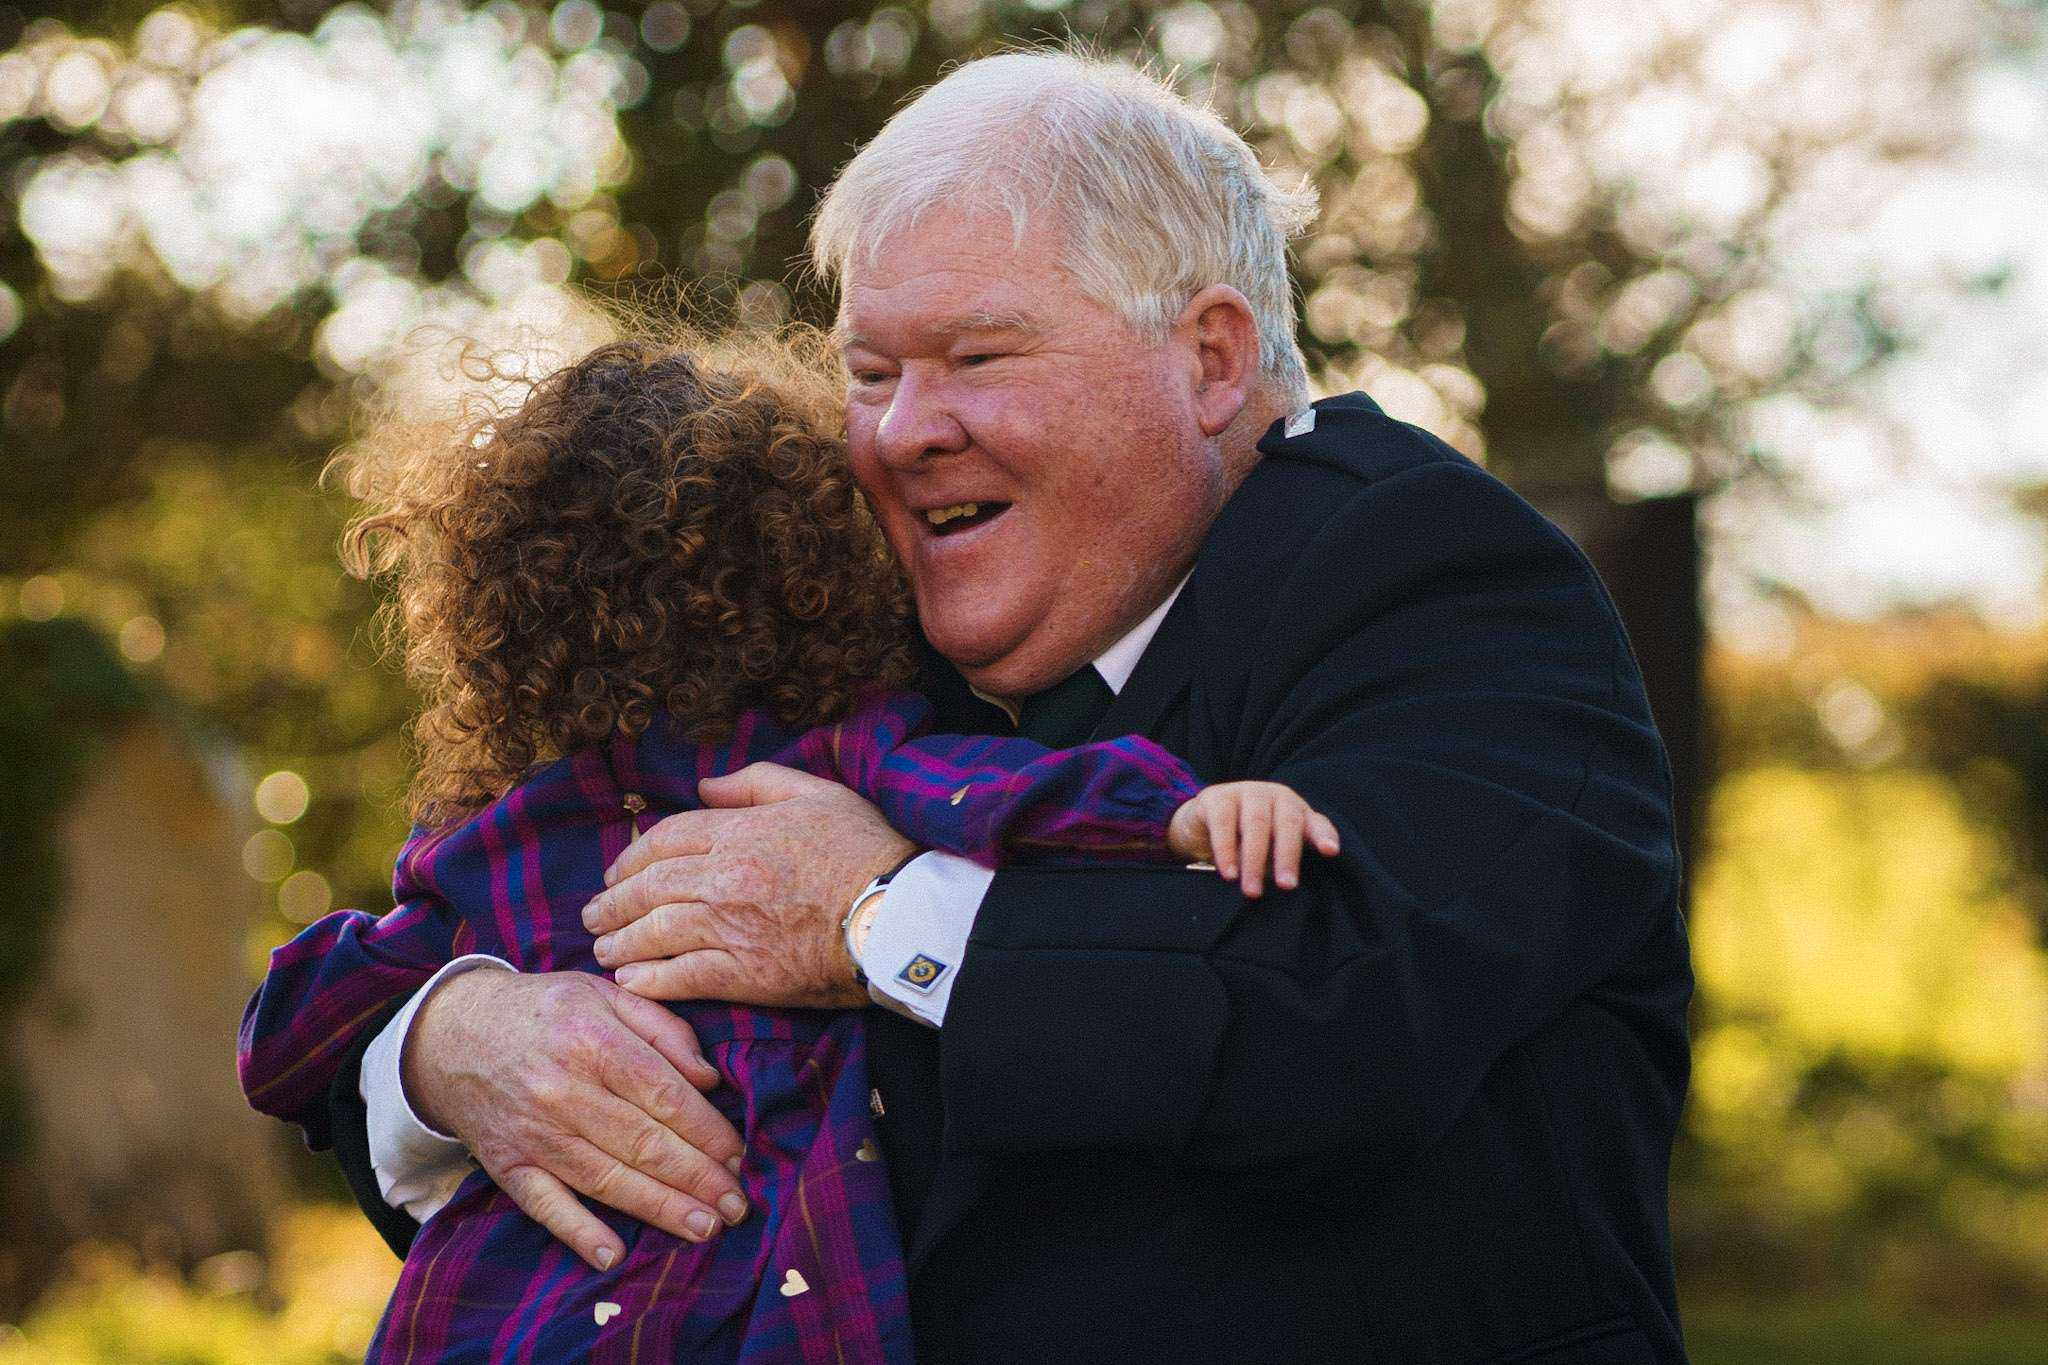 A grandfather hugging his granddaughter at a wedding ceremony